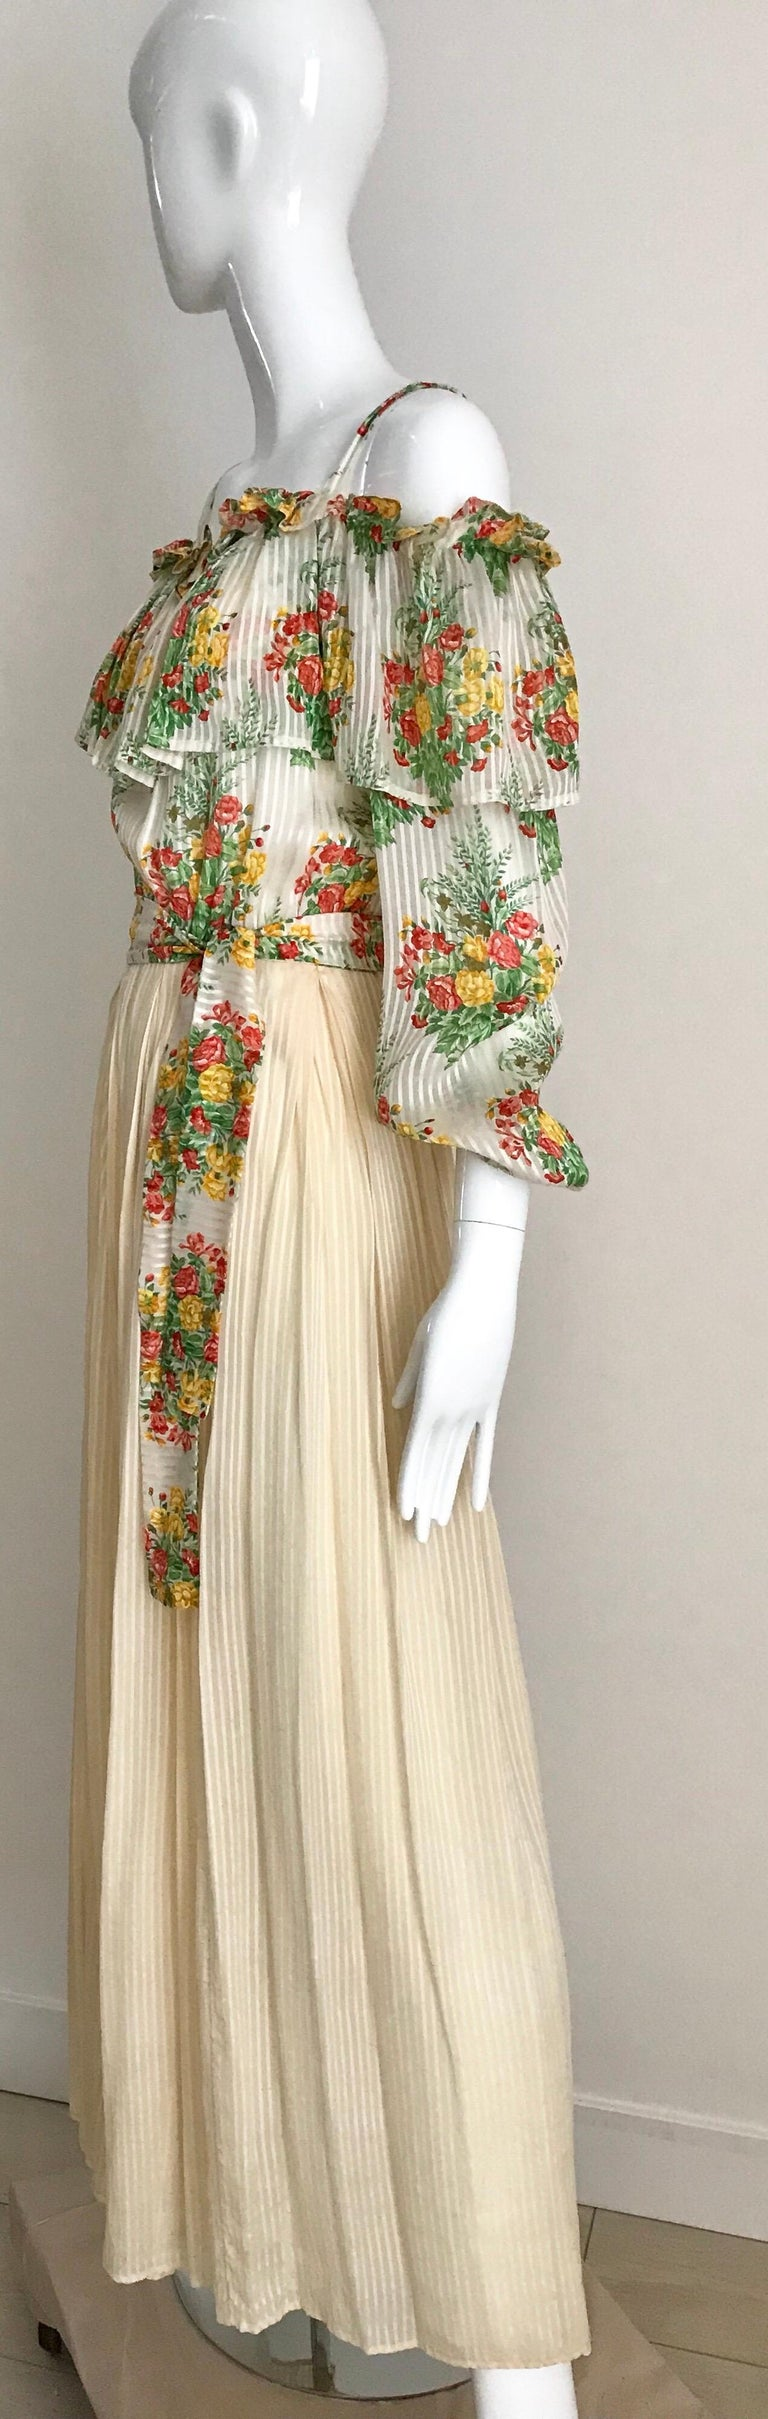 Andre Laug Creme Silk Floral Print Maxi Dress, 1970s  For Sale 1